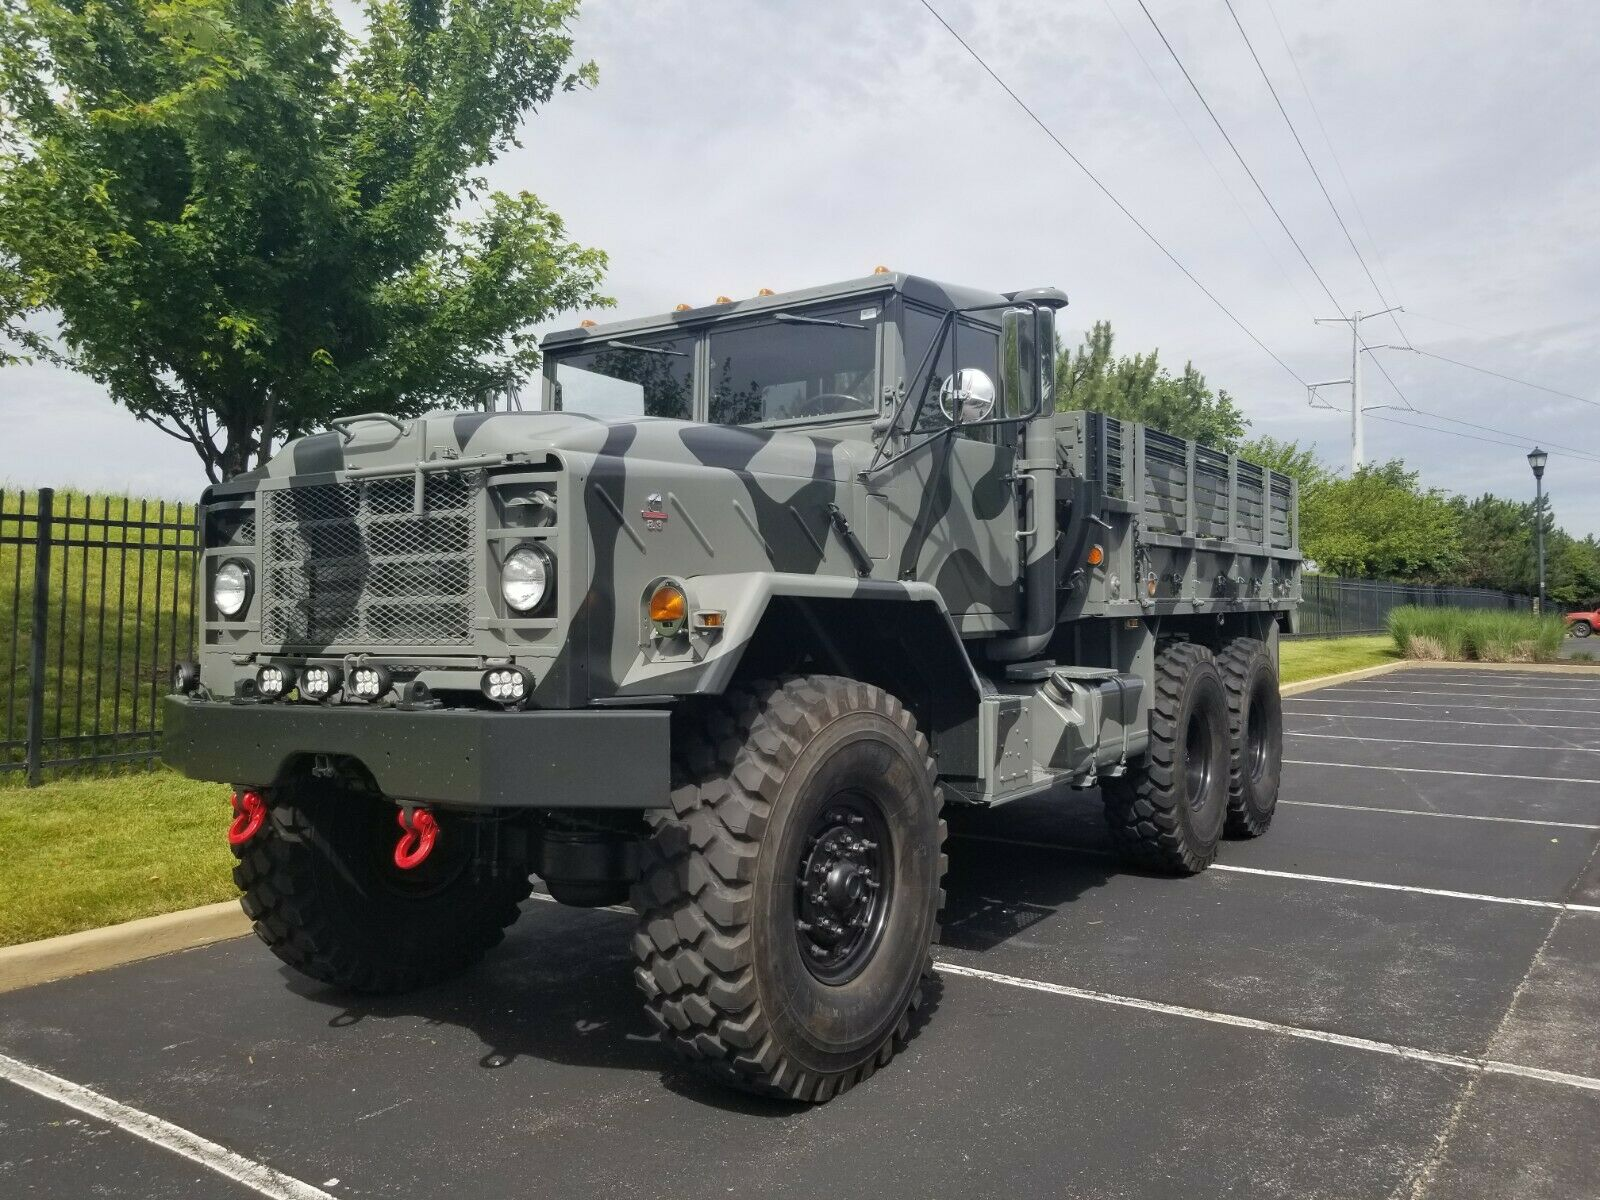 restored 1989 BMY Harsco military for sale